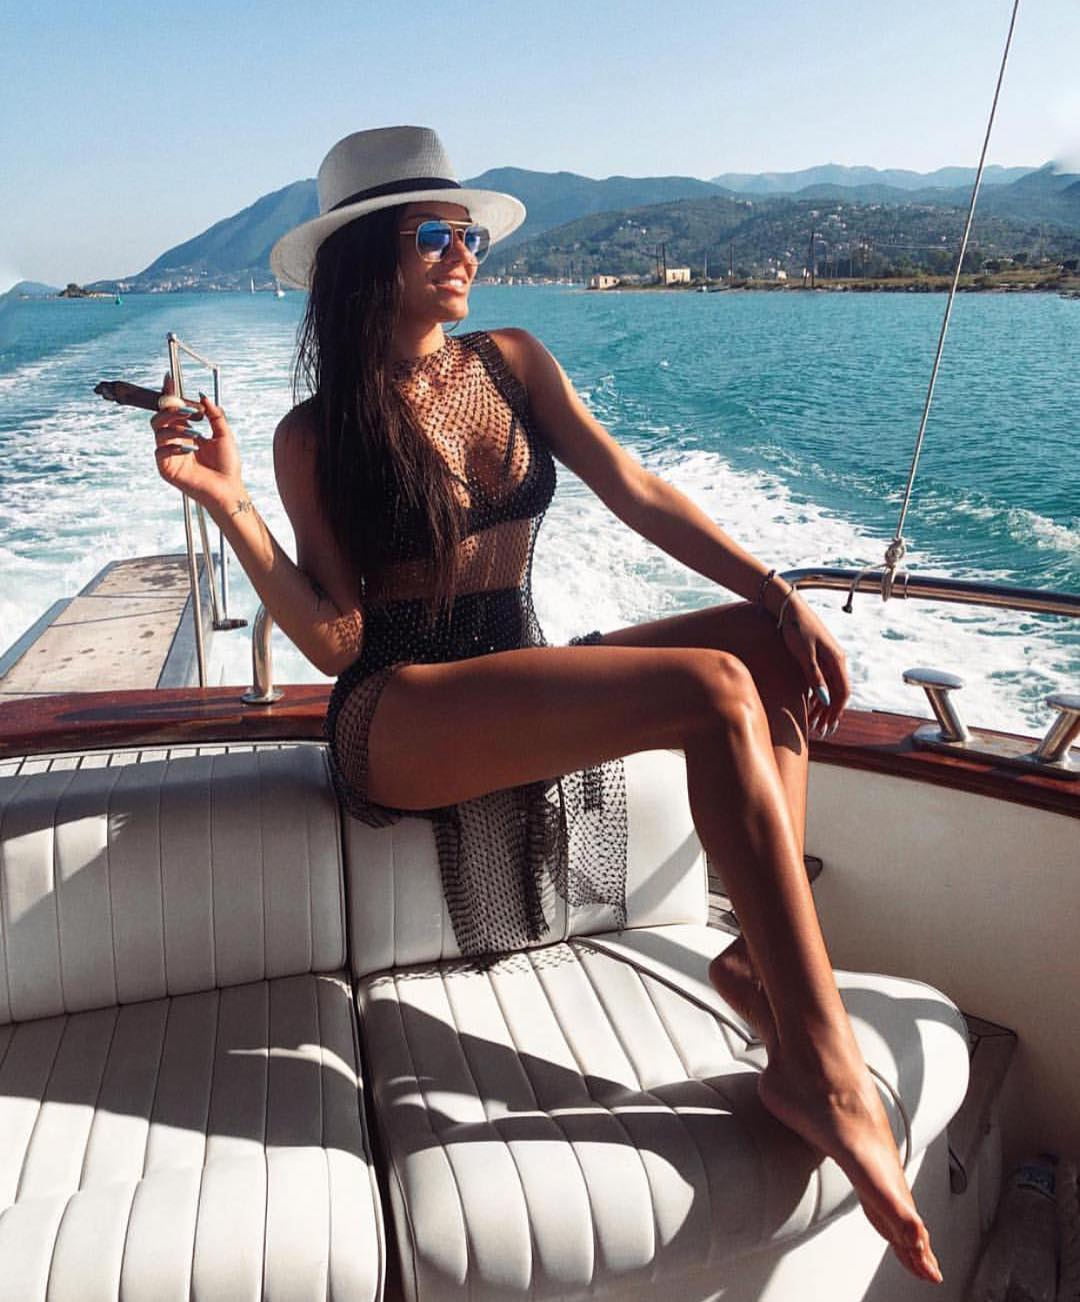 Black Bikini, Net Dress And White Panama Hat For Summer Boat Trip 2020